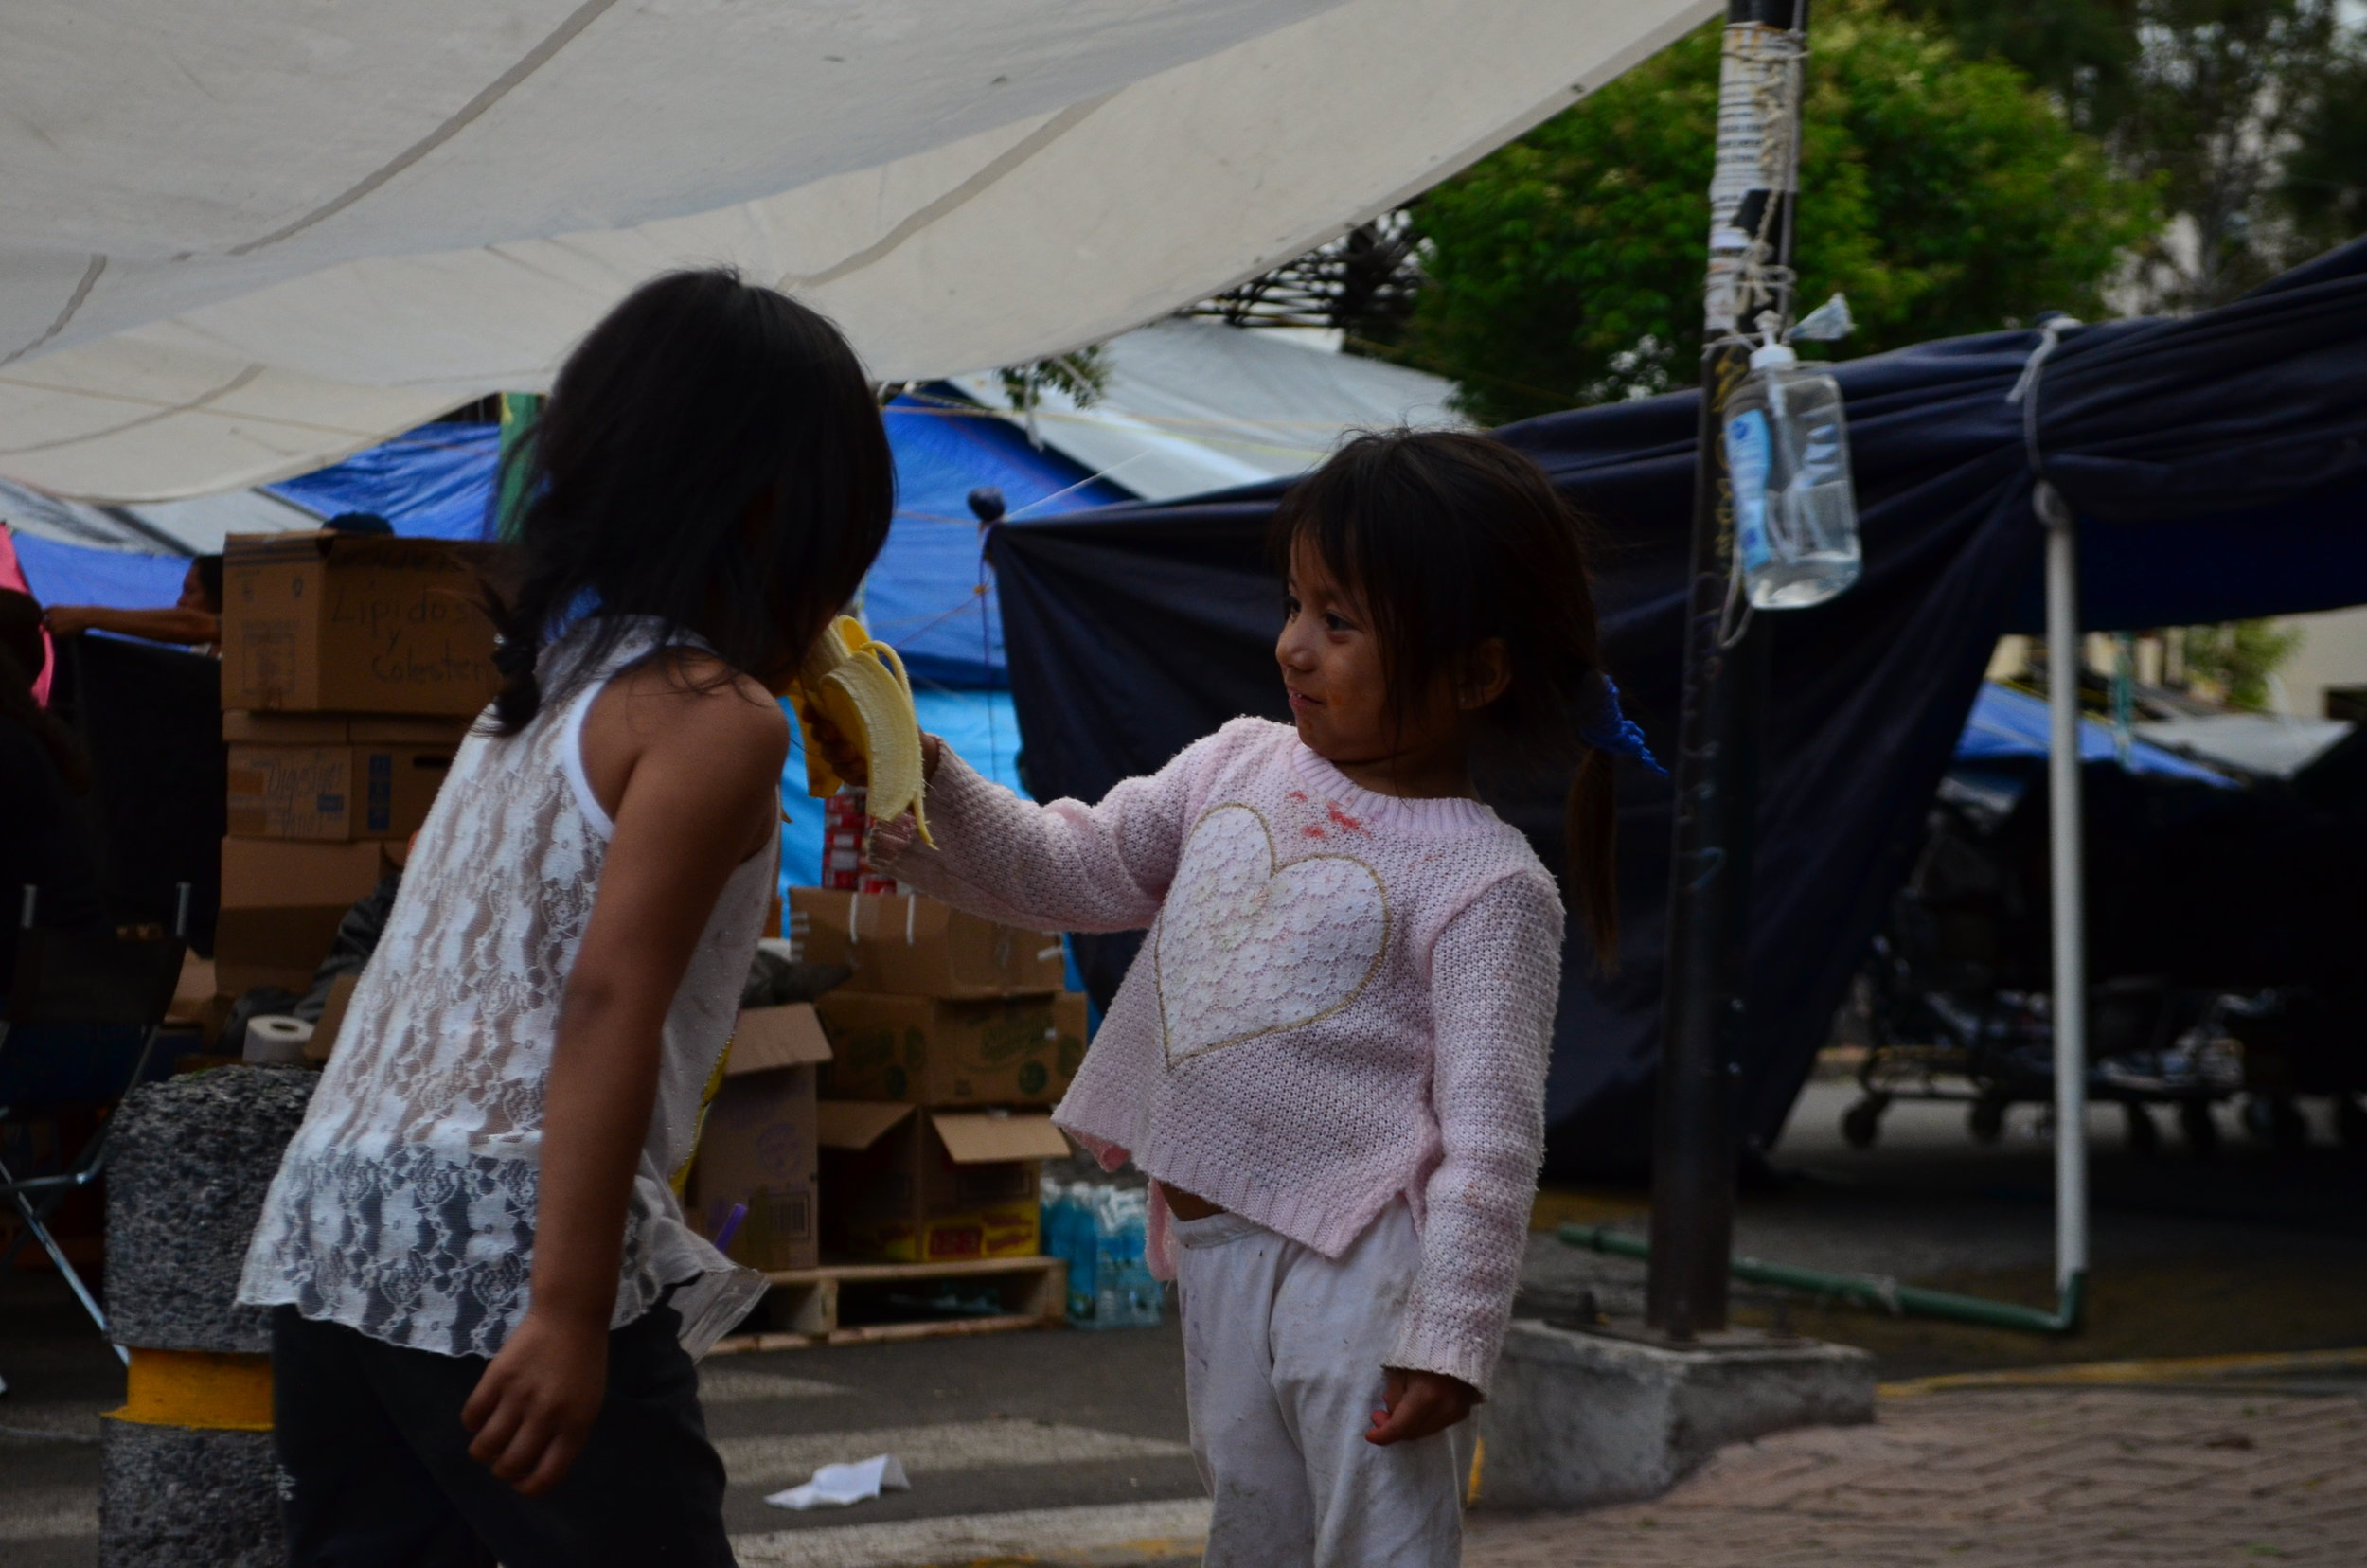 Two girls playing at the teacher's union camp in the Historic District of Mexico City in June 2016. Teachers, mostly from southern Mexican states but also from Mexico City, Sonora and Sinaloa, camped out in Mexico's capital for months in protest of an education reform sponsored by the Enrique Peña Nieto administration.